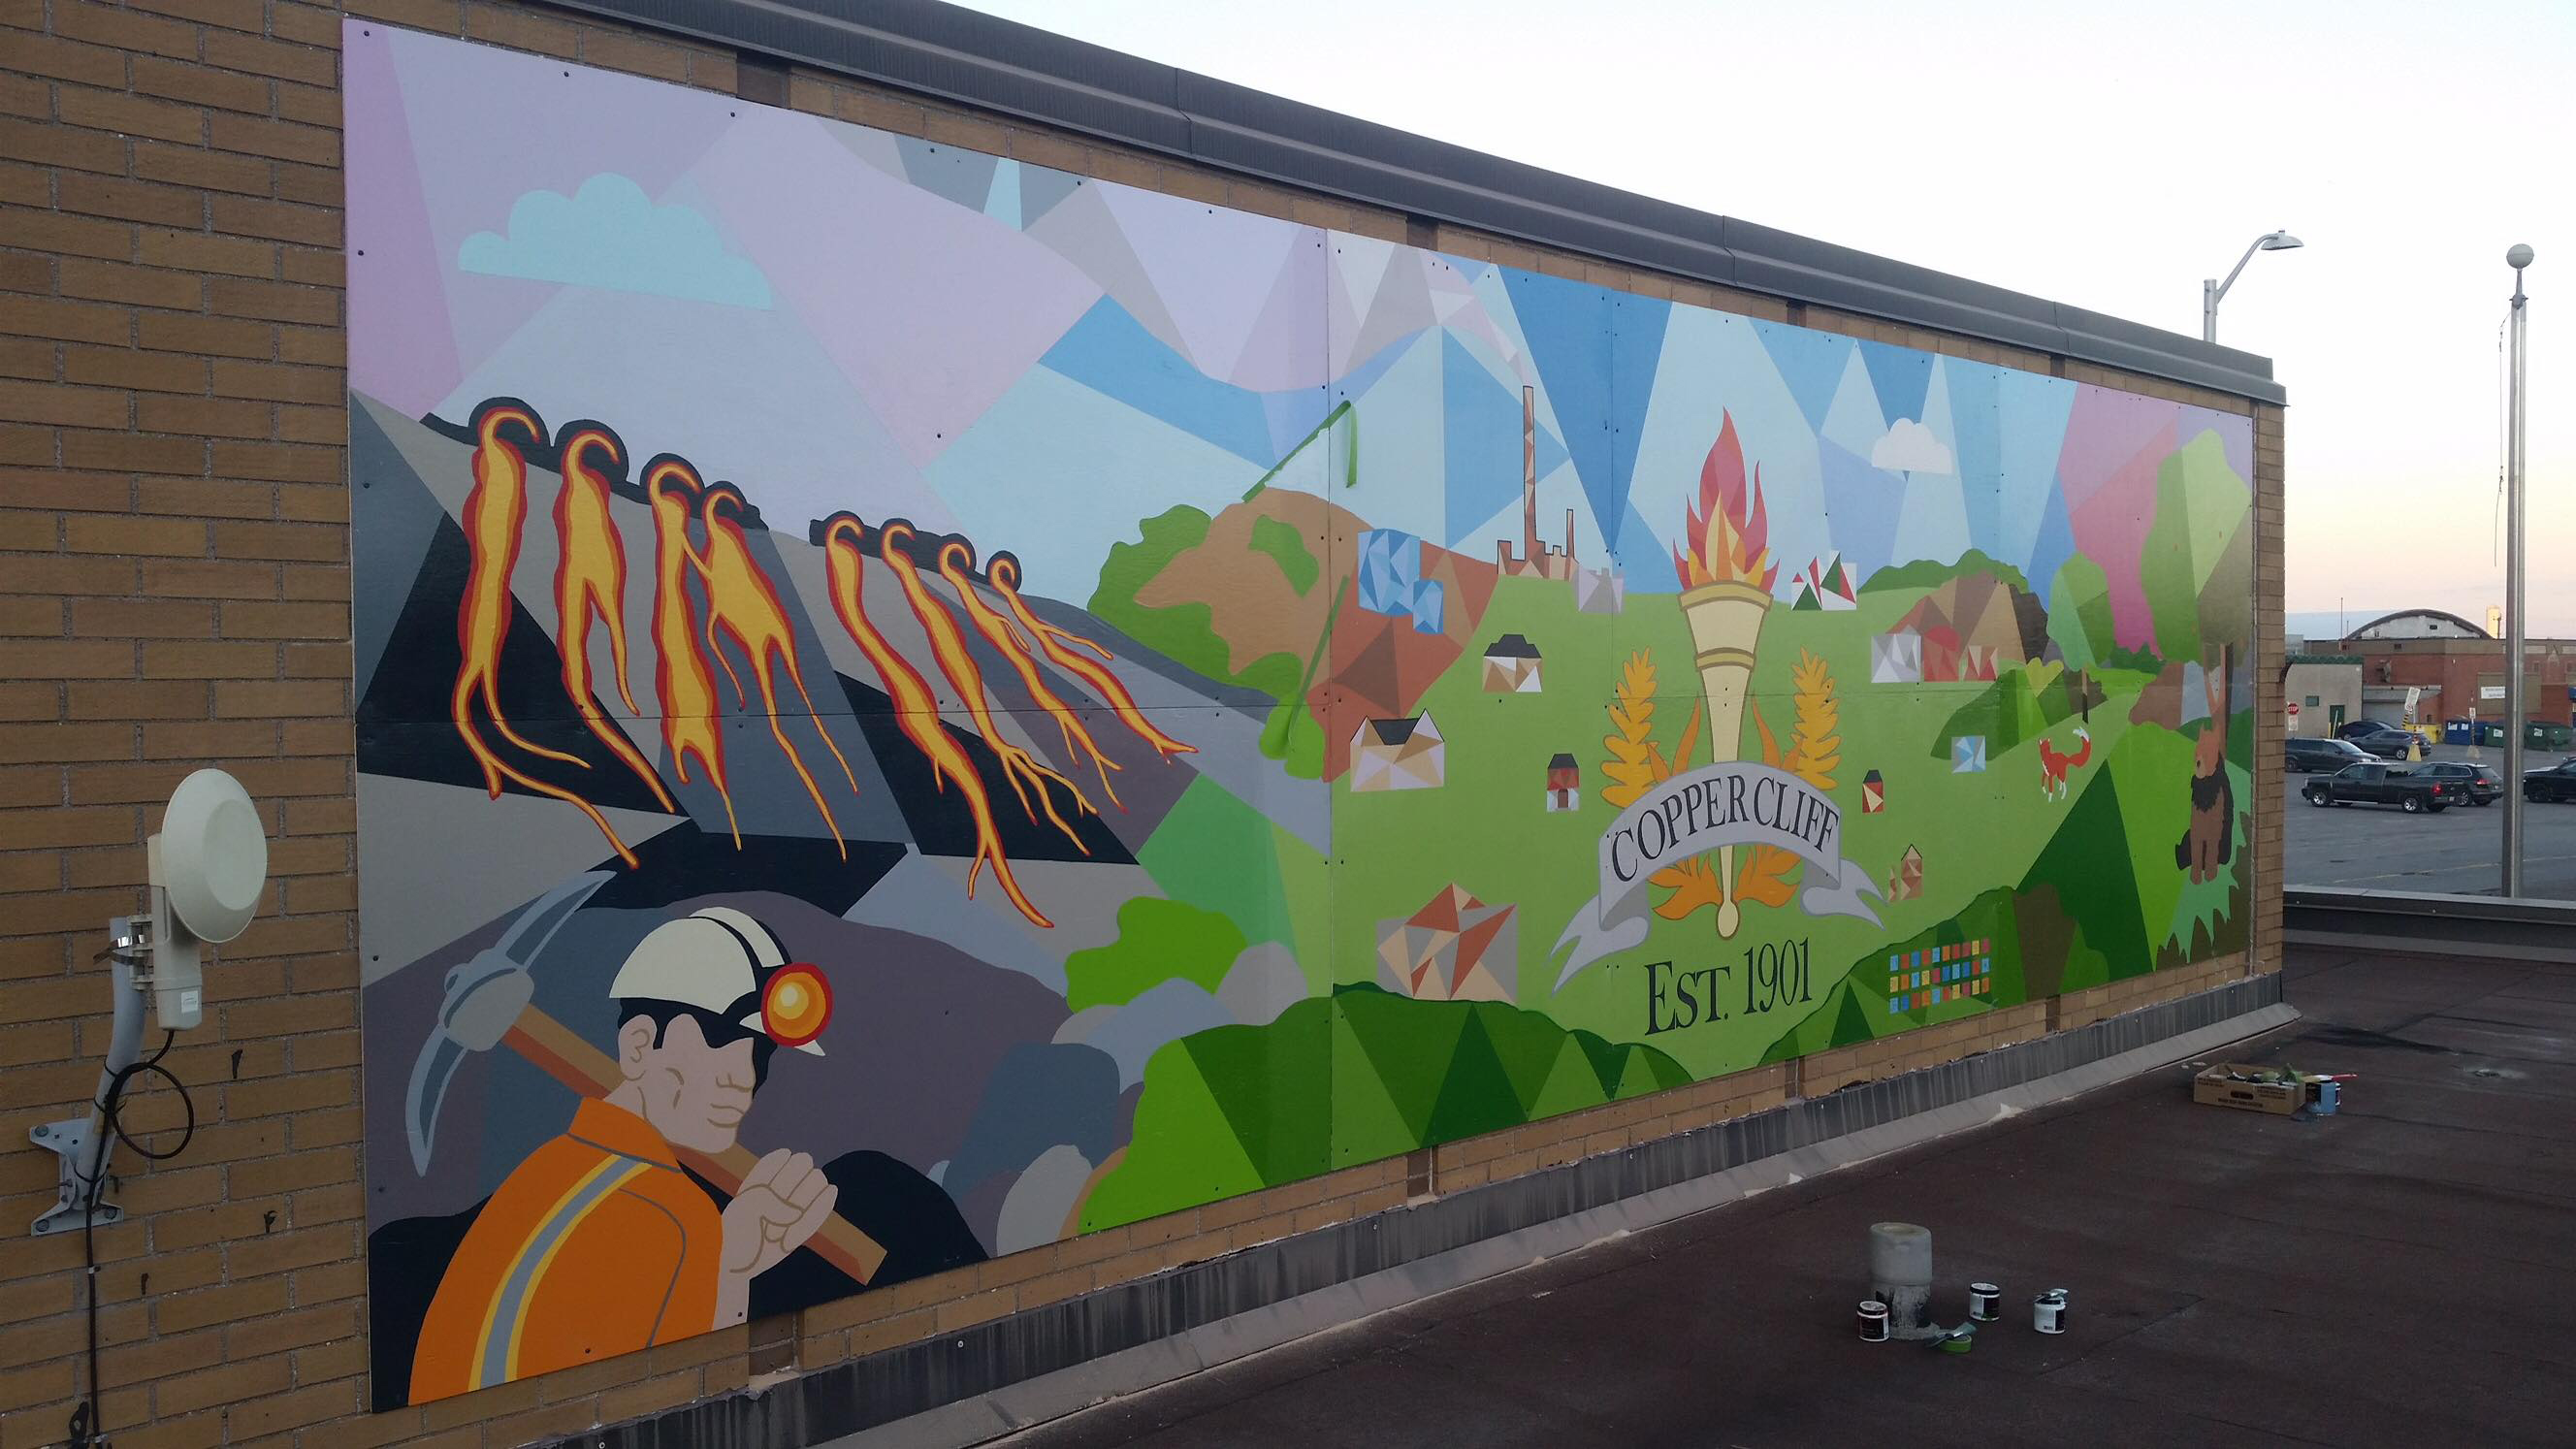 Community comes together to expand copper cliff mural